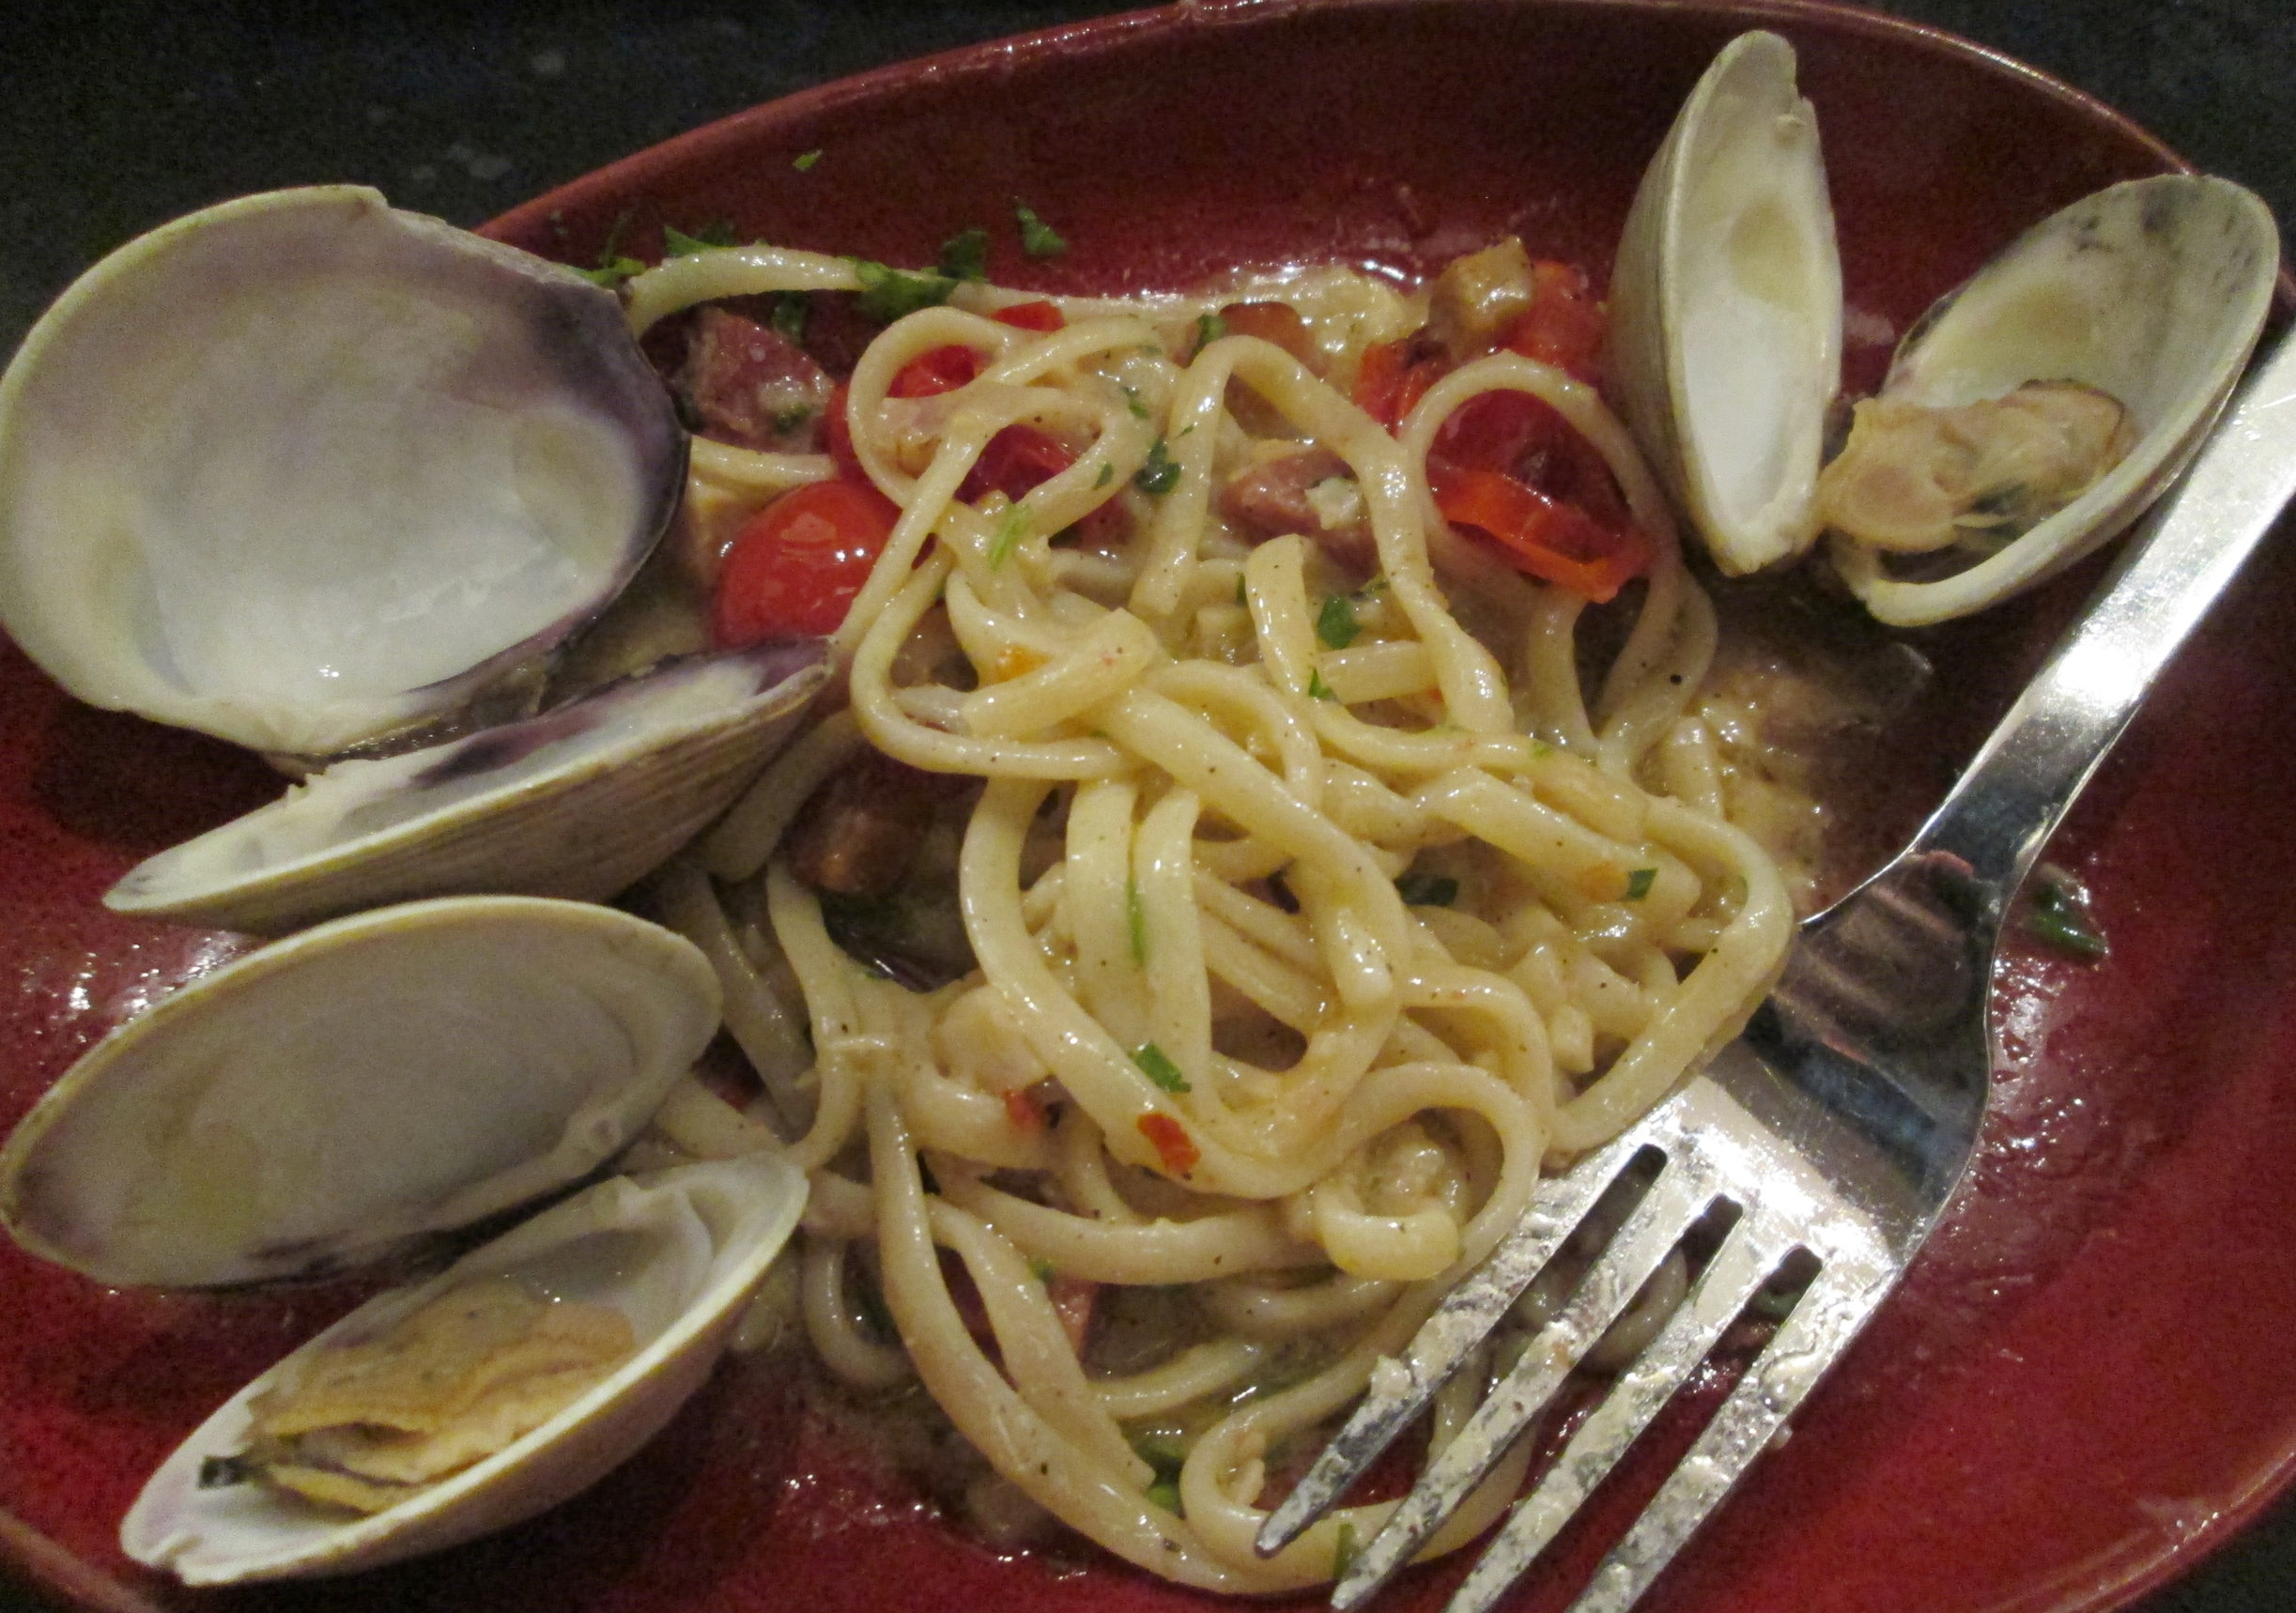 Half-eaten linguine and clams